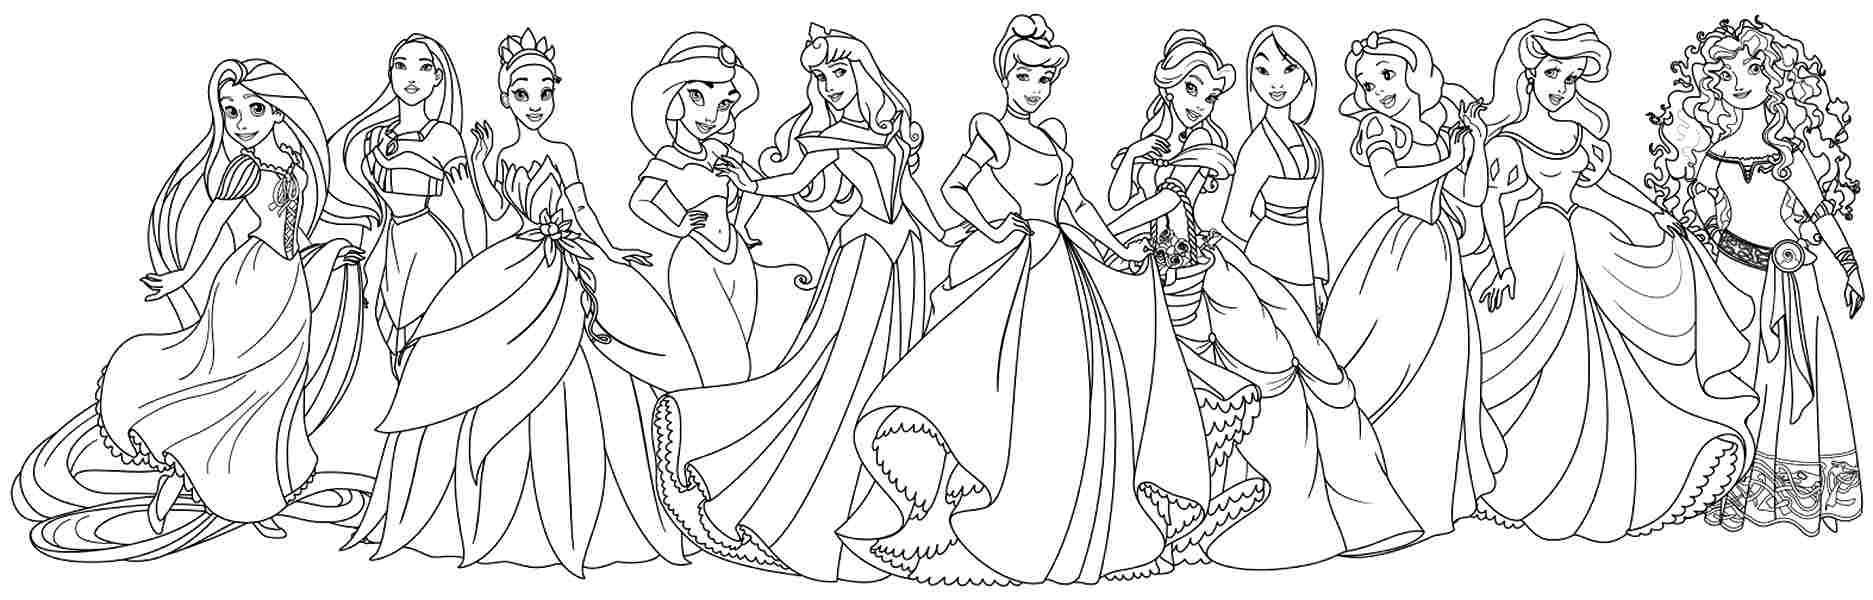 all disney princess coloring pages Free Coloring Sheets